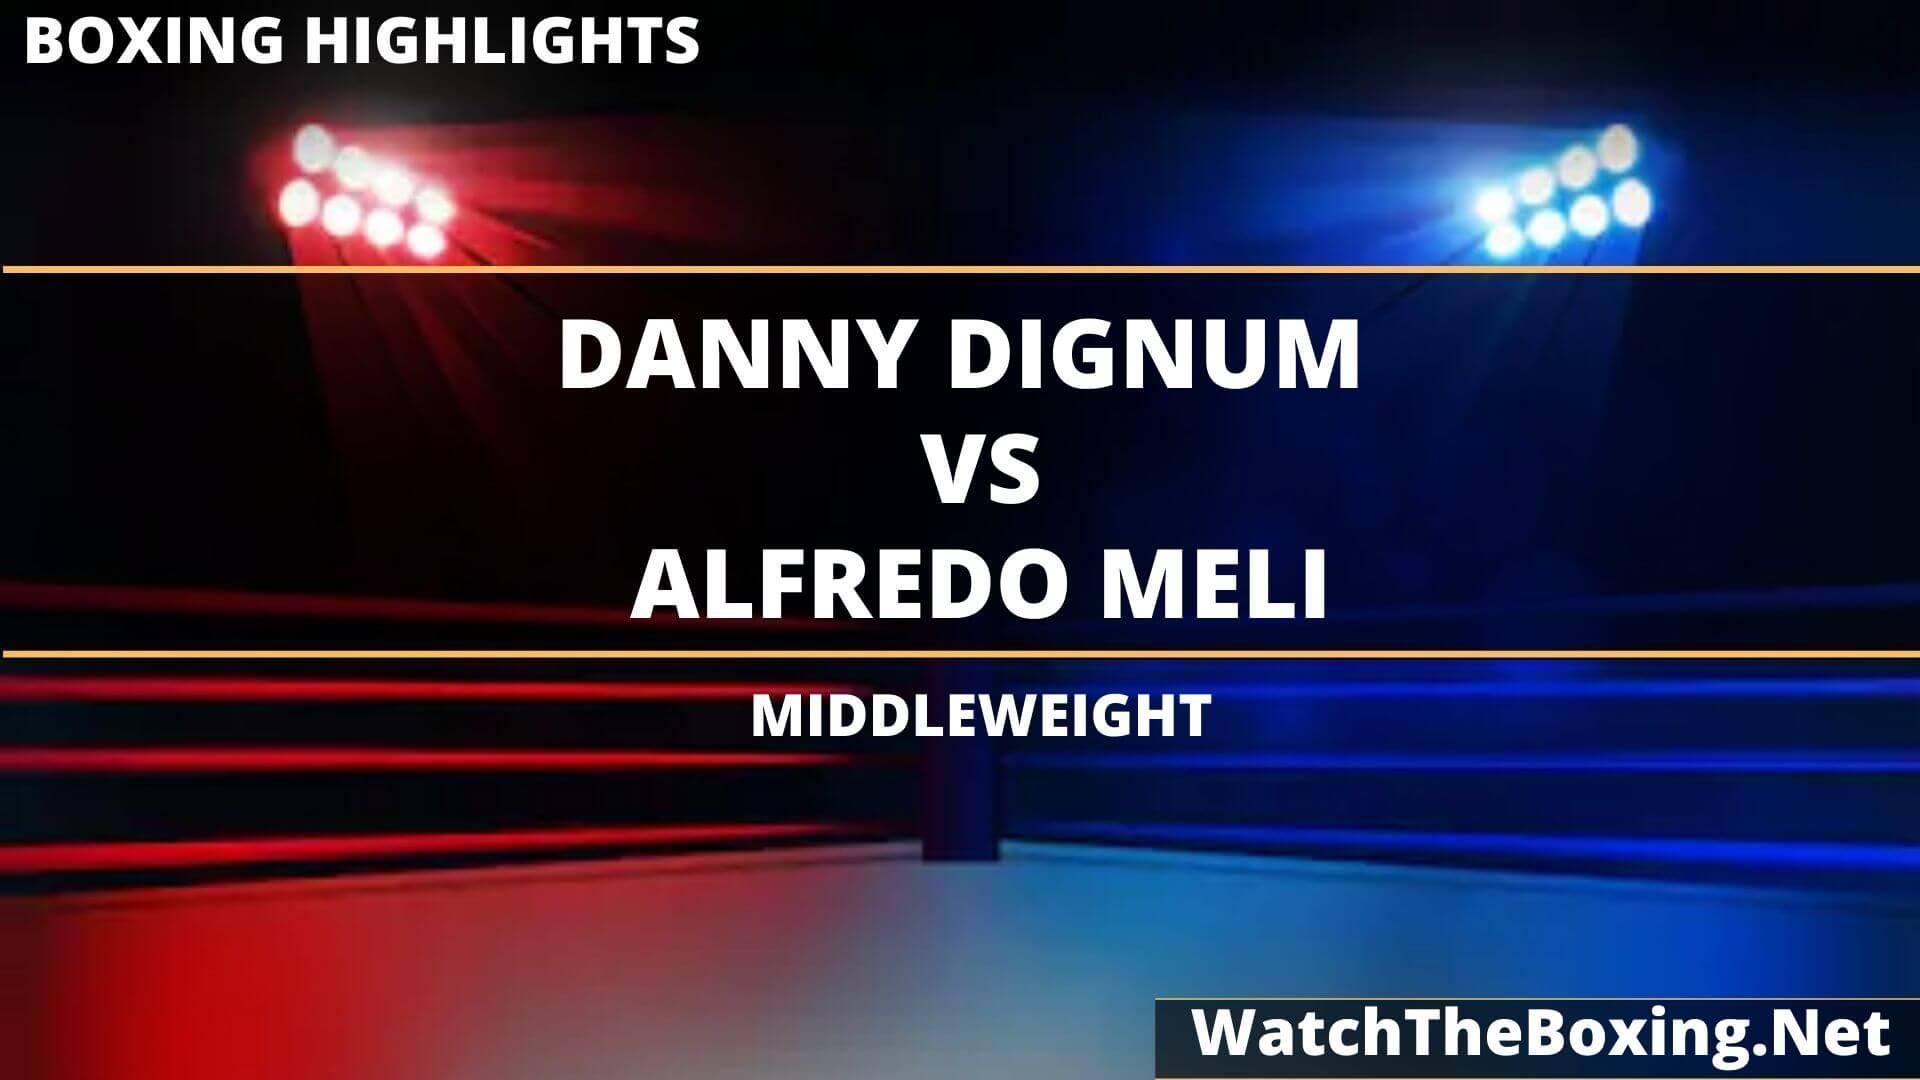 Danny Dignum Vs Alfredo Meli Highlights 2020 Middleweight